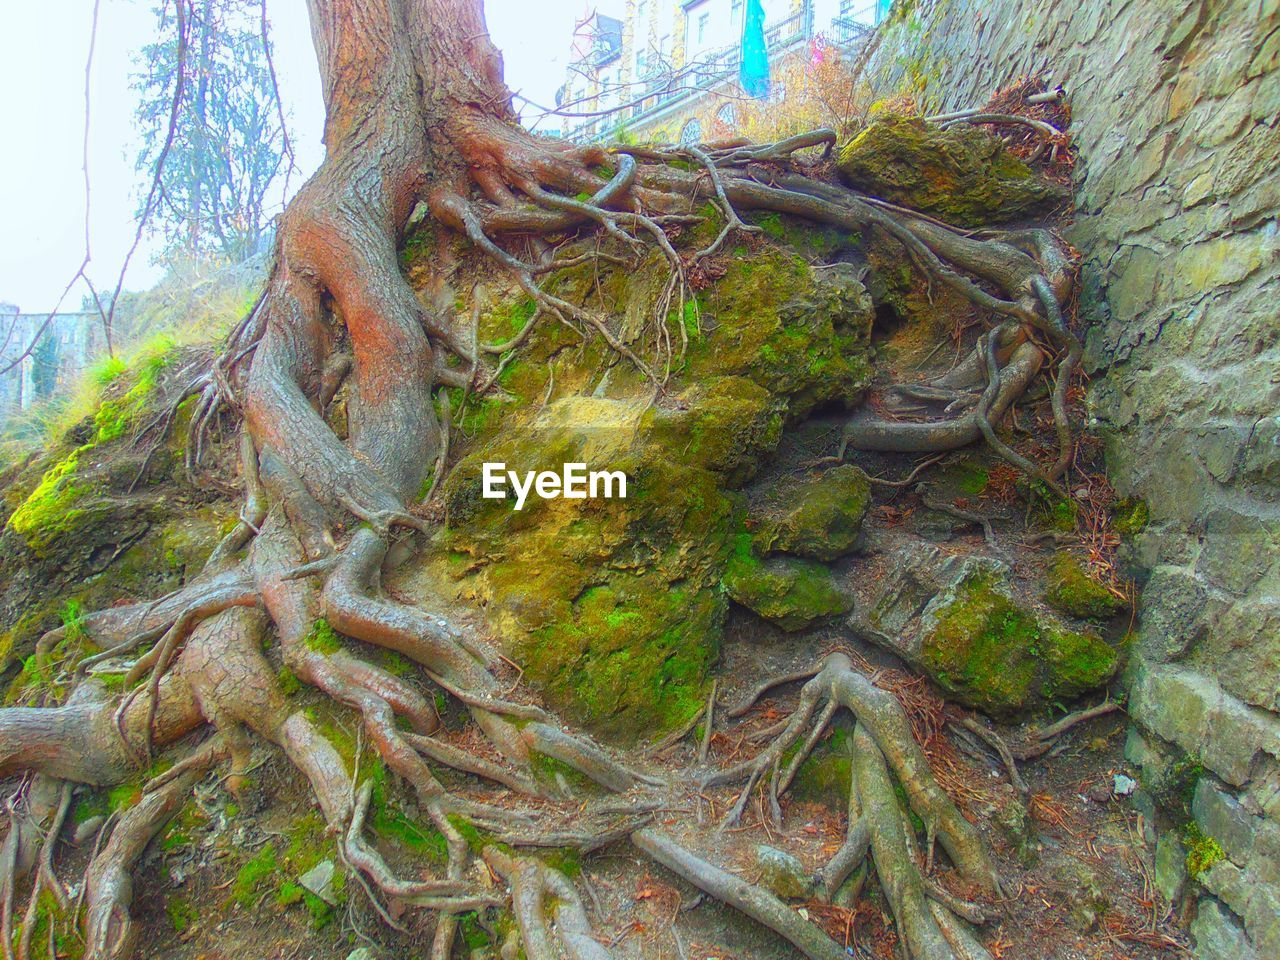 tree, tree trunk, nature, root, day, no people, forest, moss, outdoors, growth, tranquility, branch, beauty in nature, dead tree, close-up